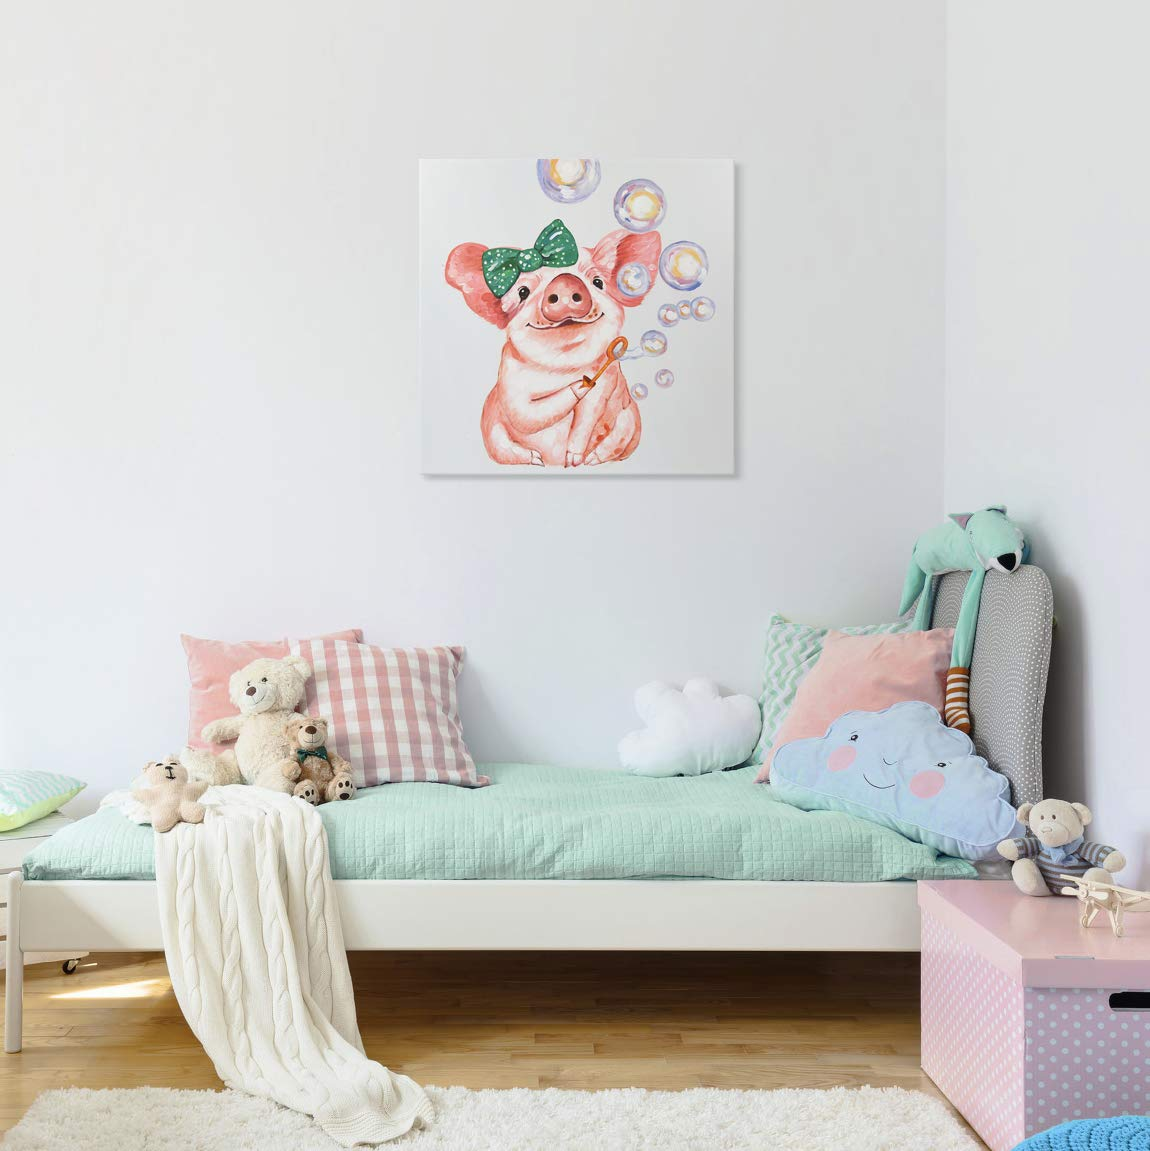 SEVEN WALL ARTS-Modern Smart Pig Hand Painted Cute Pig Paintings Colorful Animal Canvas Artwork with Stretched Ready to Hang for Home Decor 24 x 24 Inch